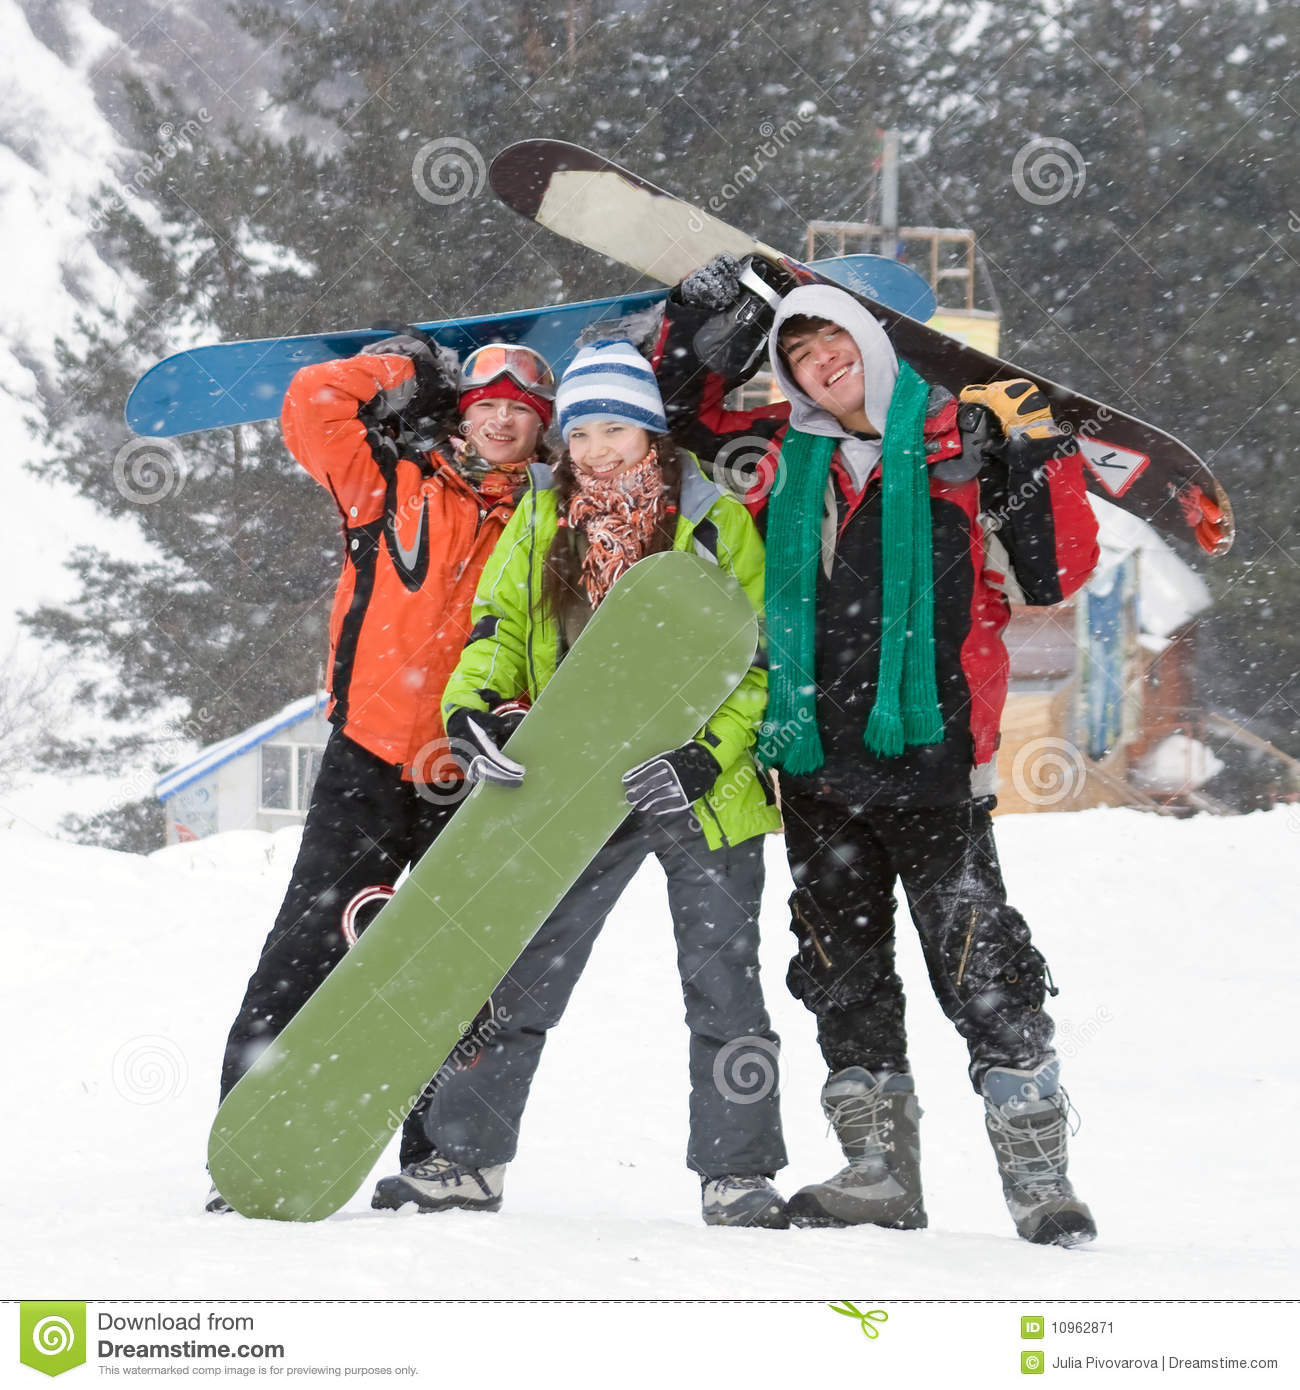 Healthy lifestyle image of snowboarders team